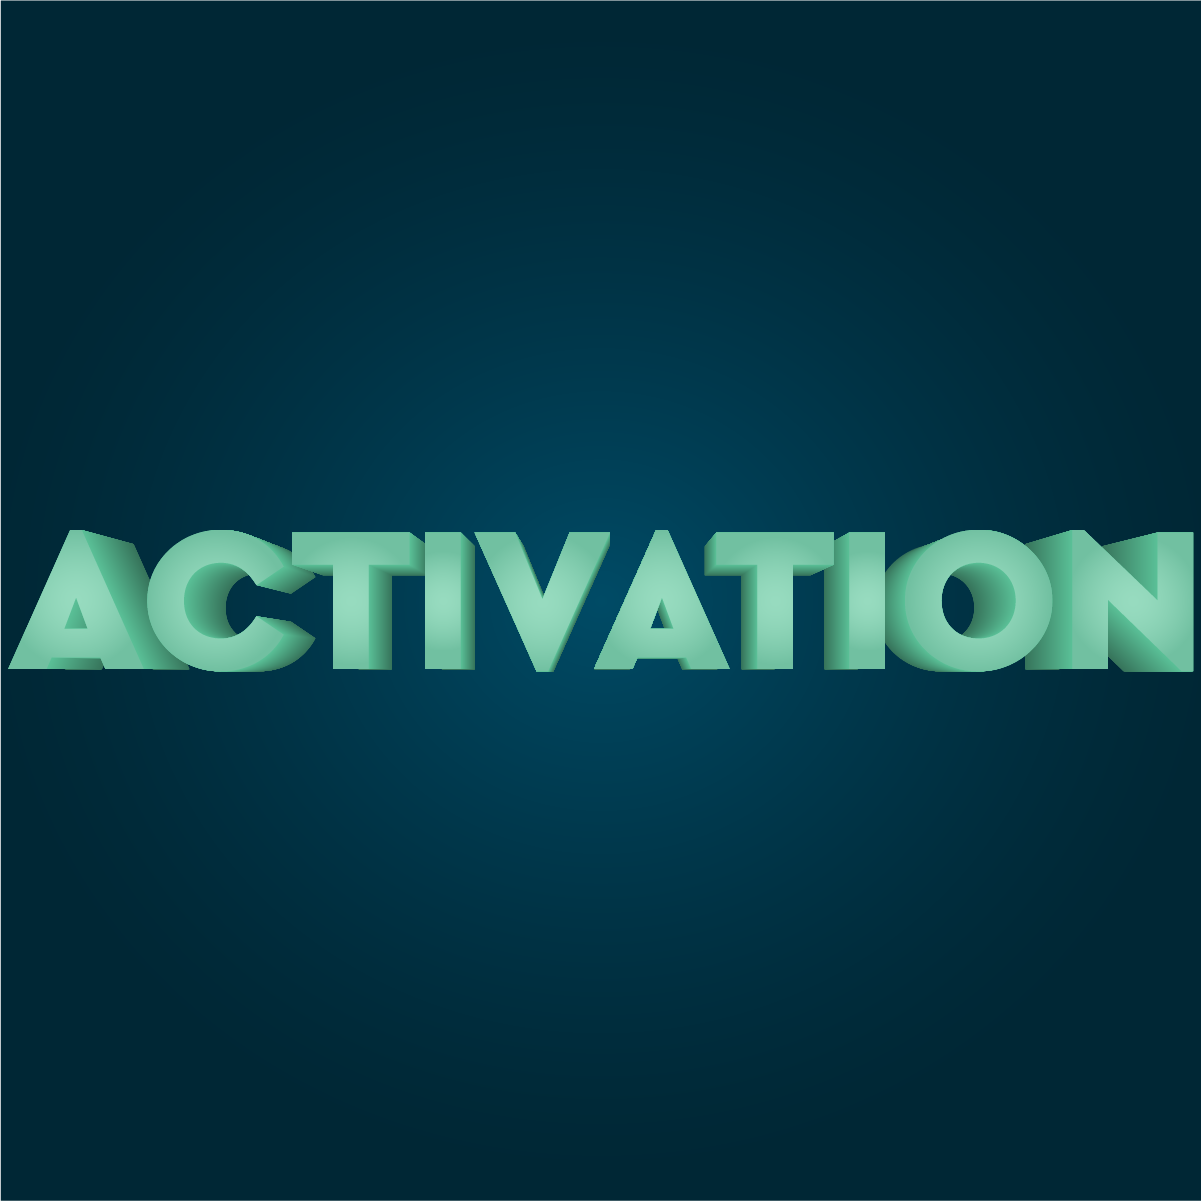 Activation image